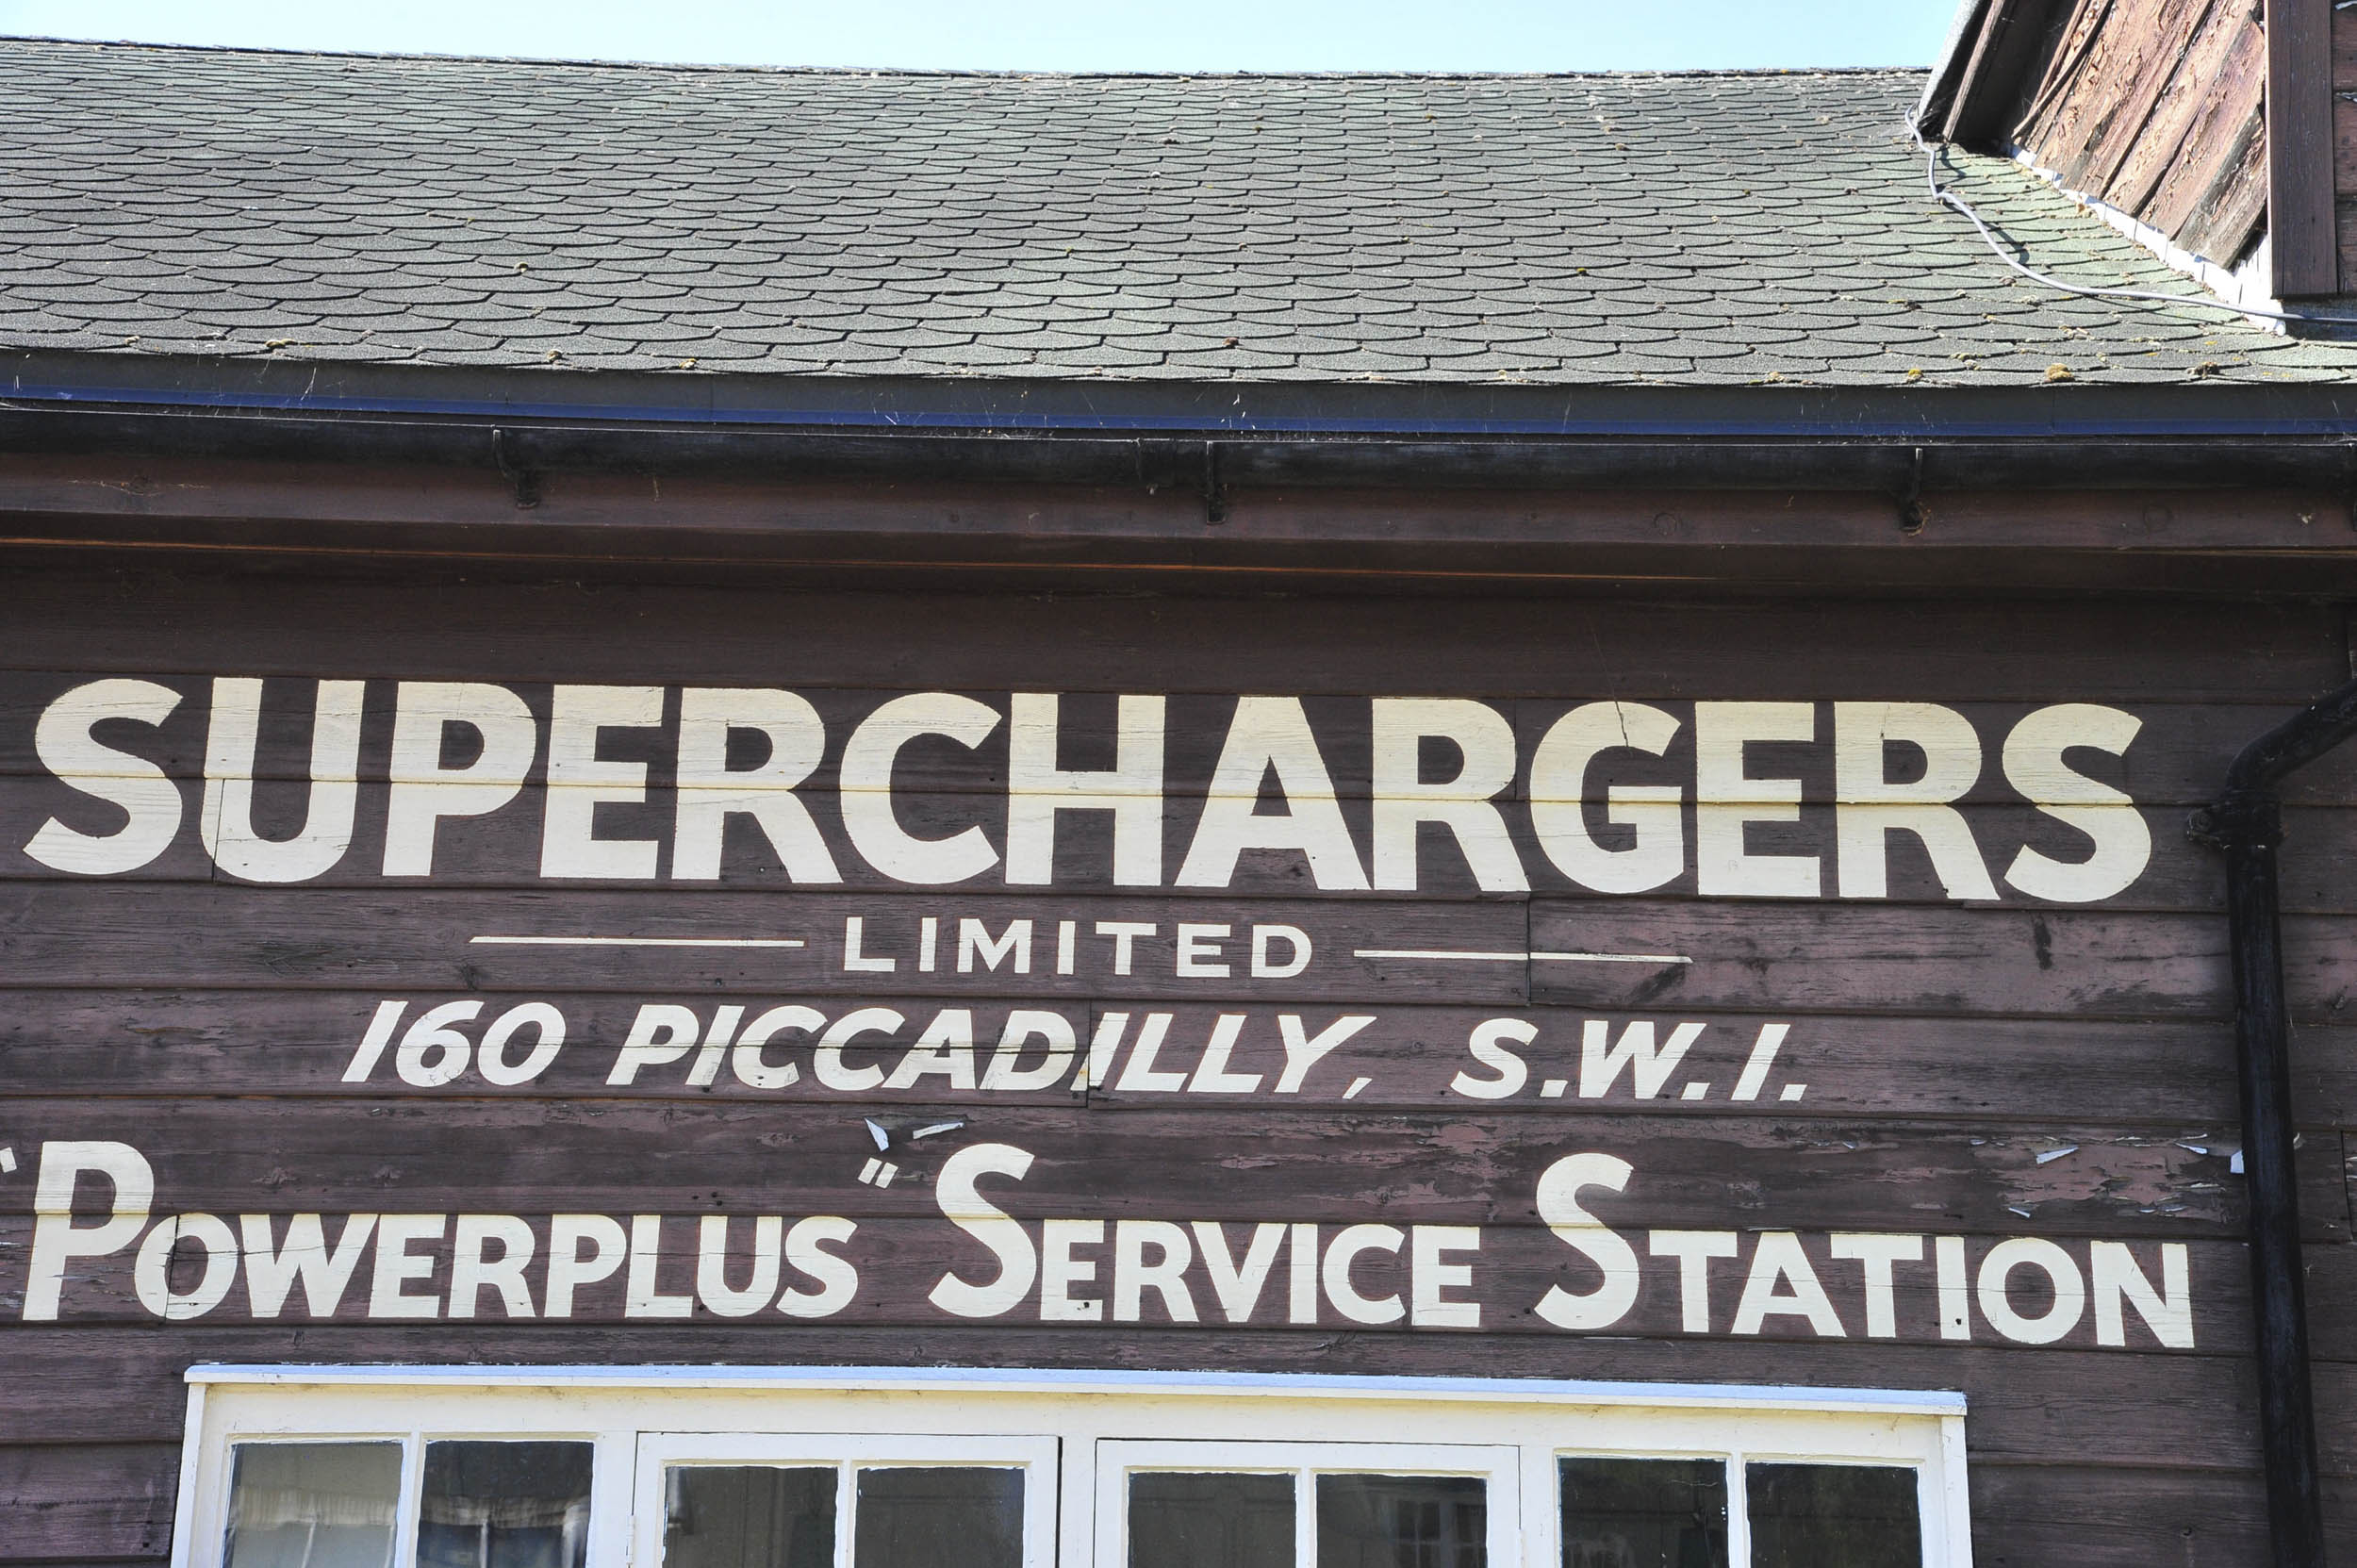 Brookland Museum Superchargers Powerplus service station